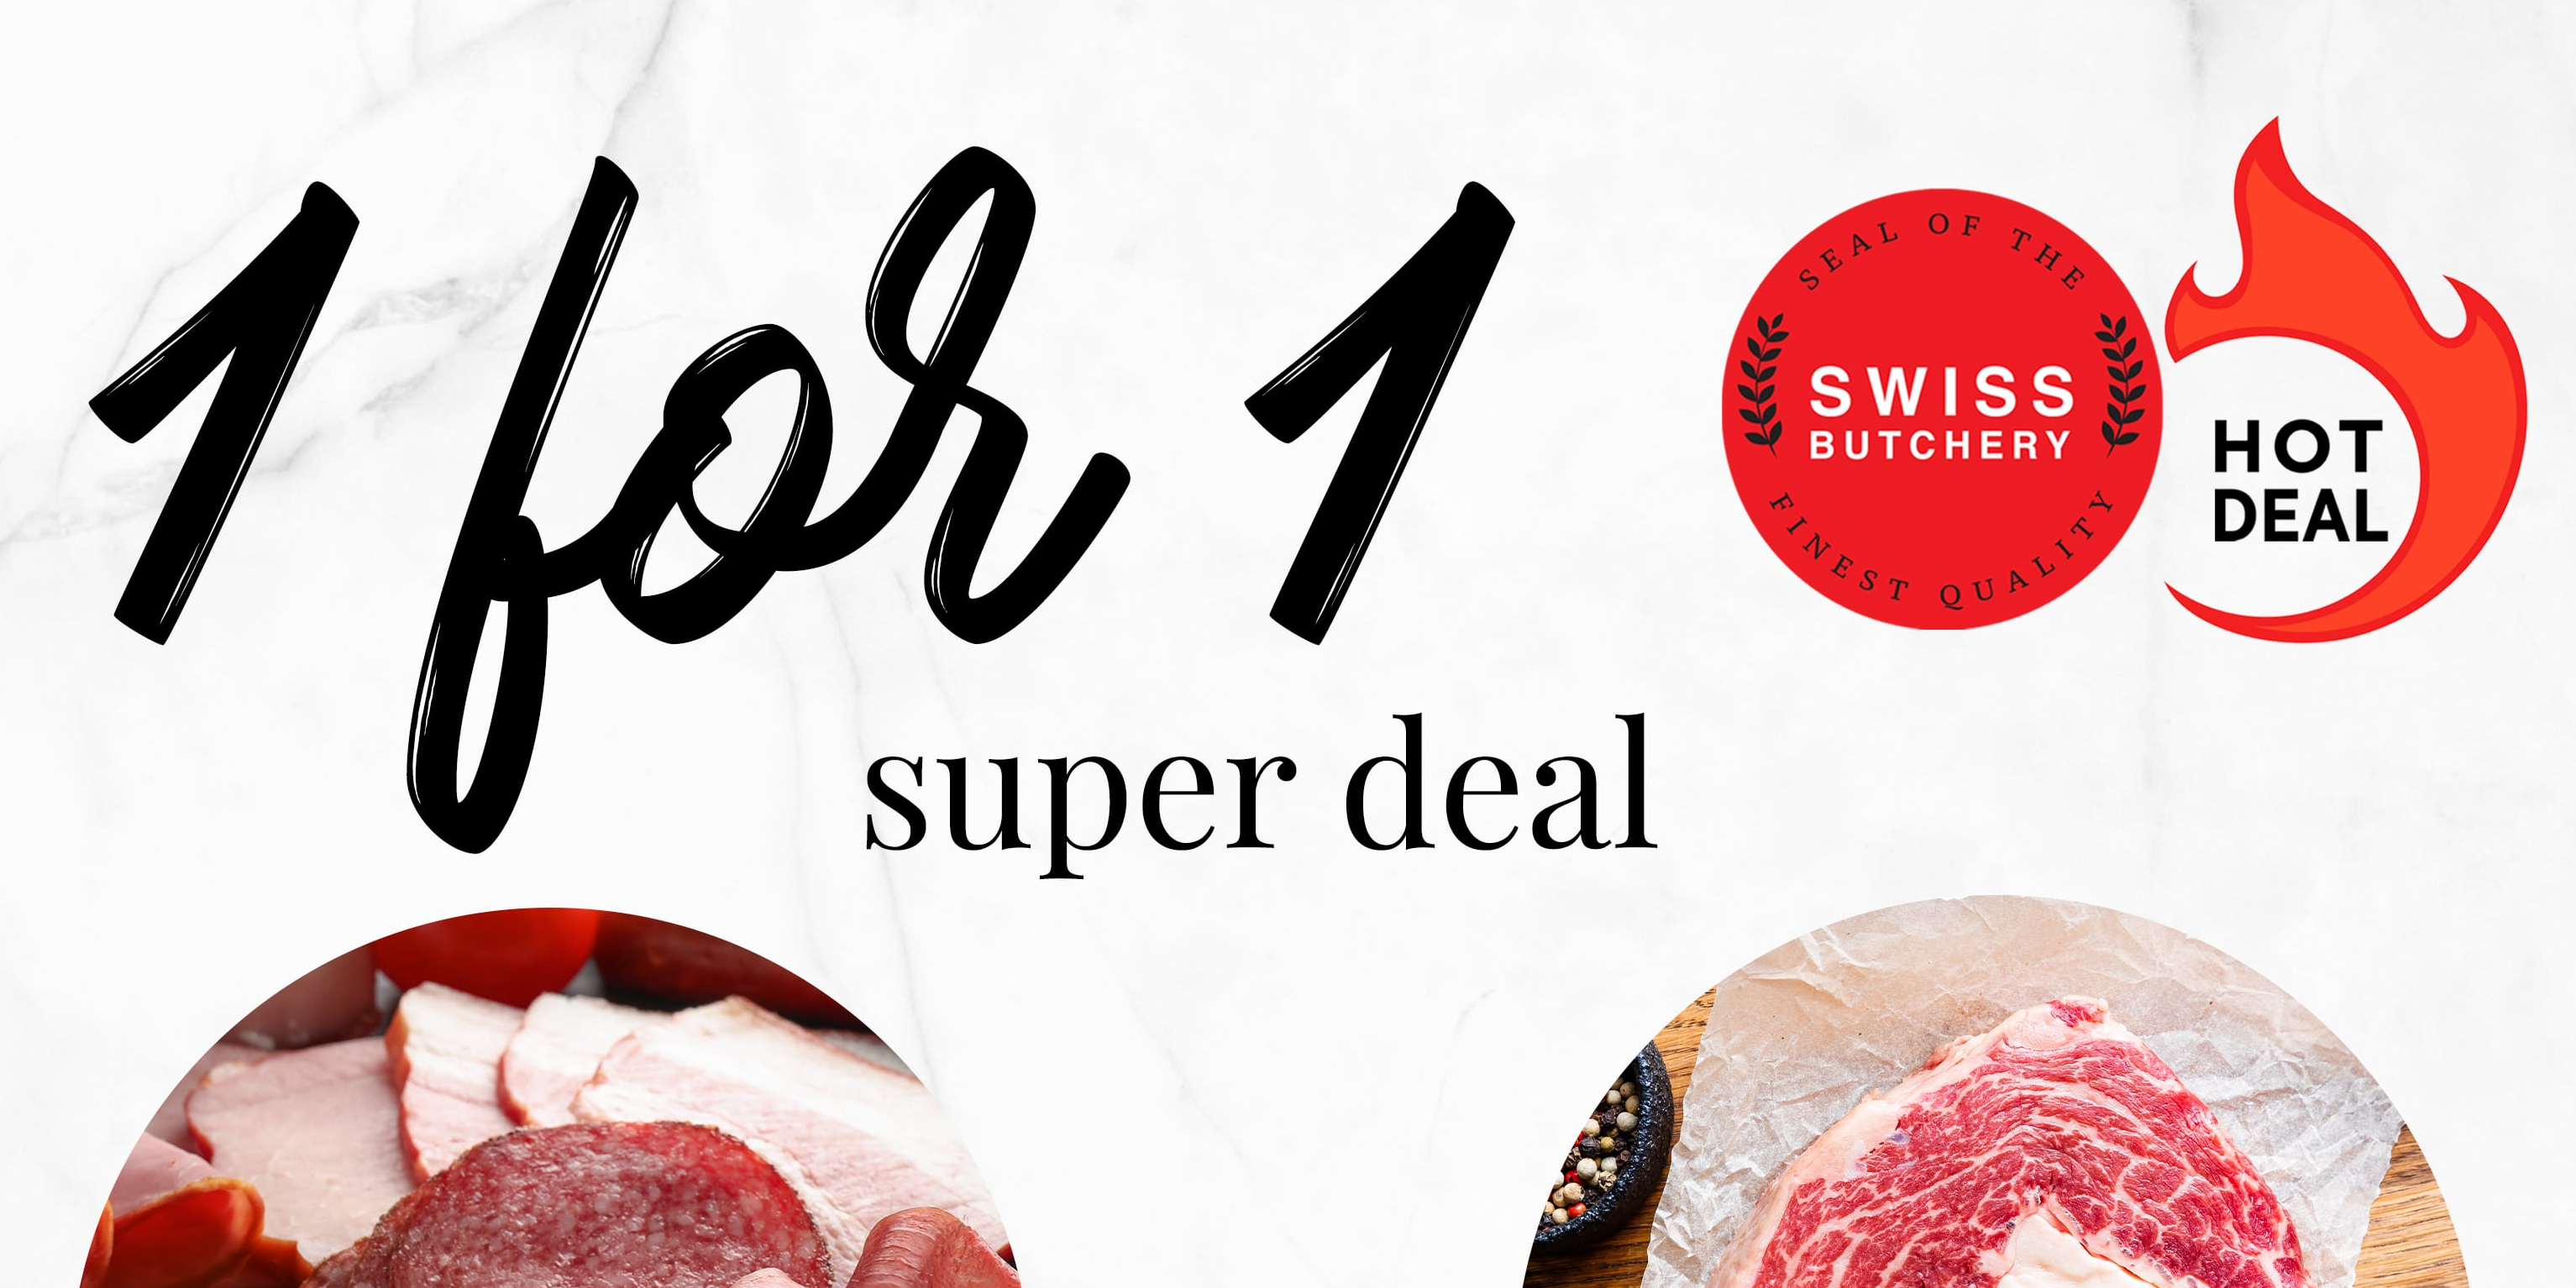 Exclusive 1-for-1 deals for selected Premium Meat + Buy 2 Get 1 Free for Freshly-baked Pastries!